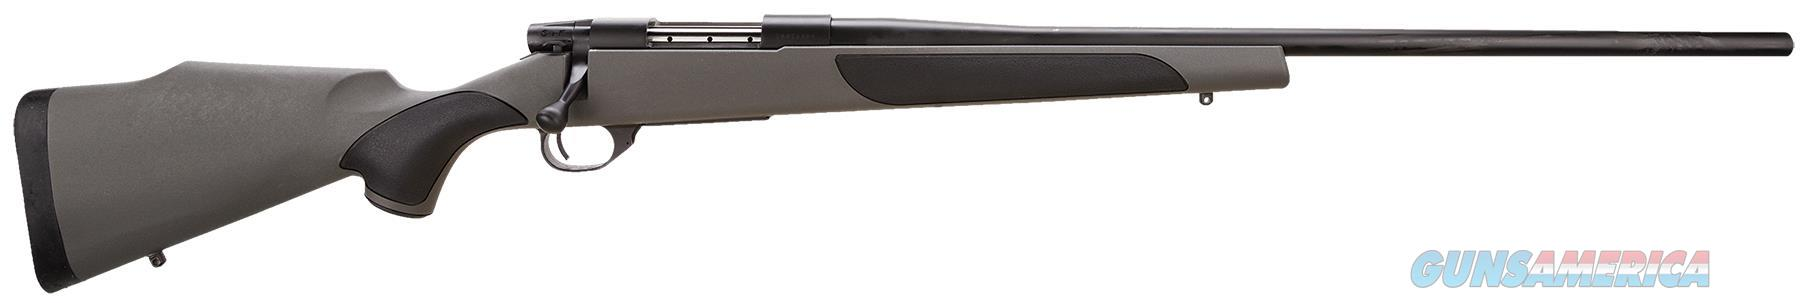 WEATHERBY VANGUARD S2 223 REM VGT223RR4O  Guns > Rifles > Weatherby Rifles